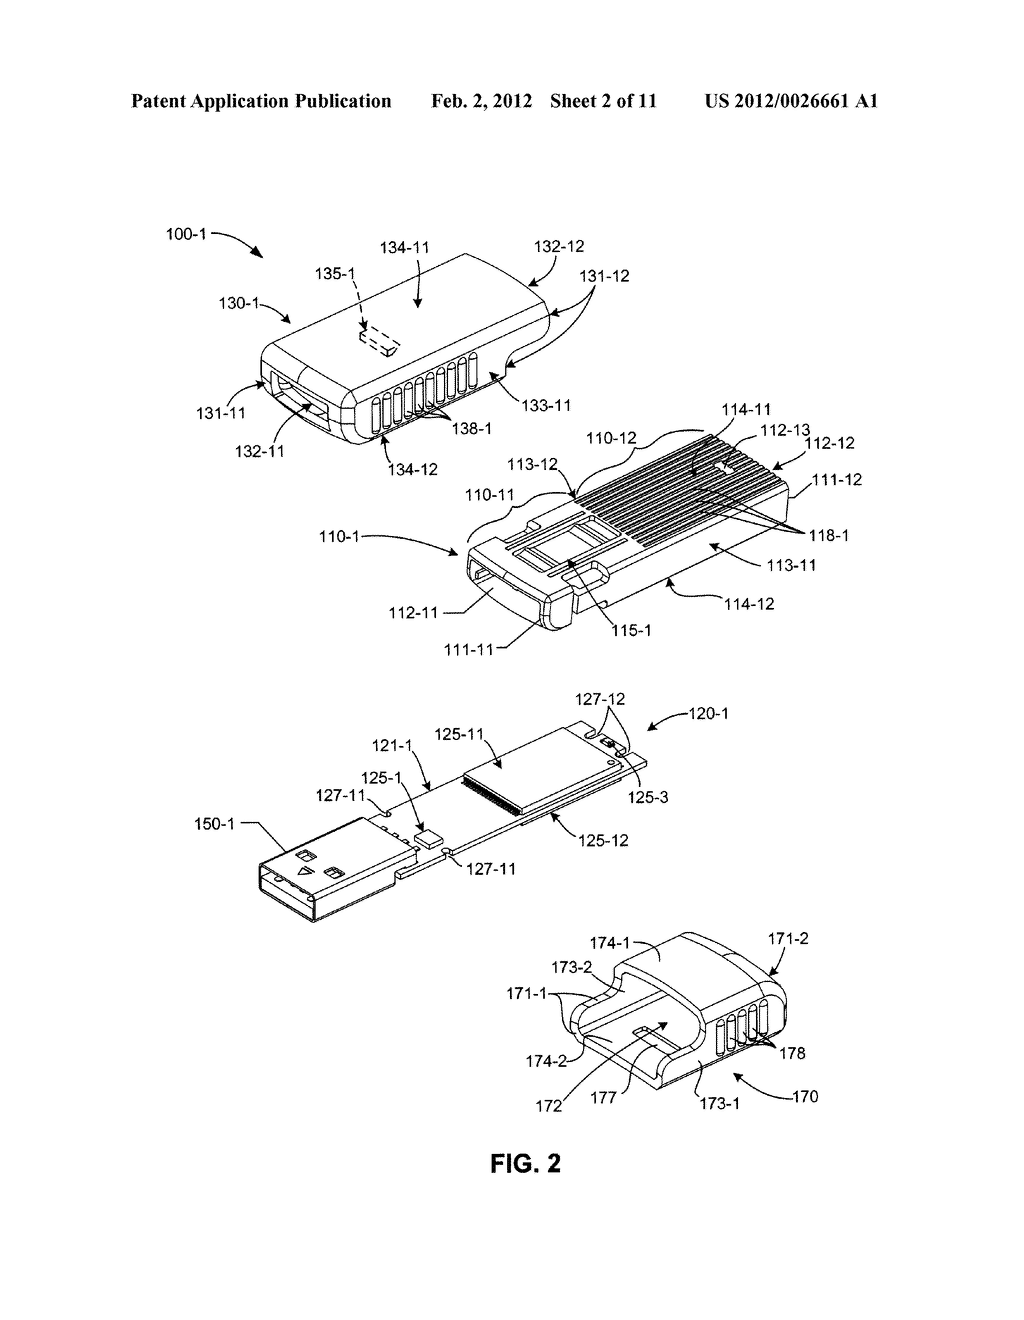 Usb flash drive with deploying and retracting functionalities